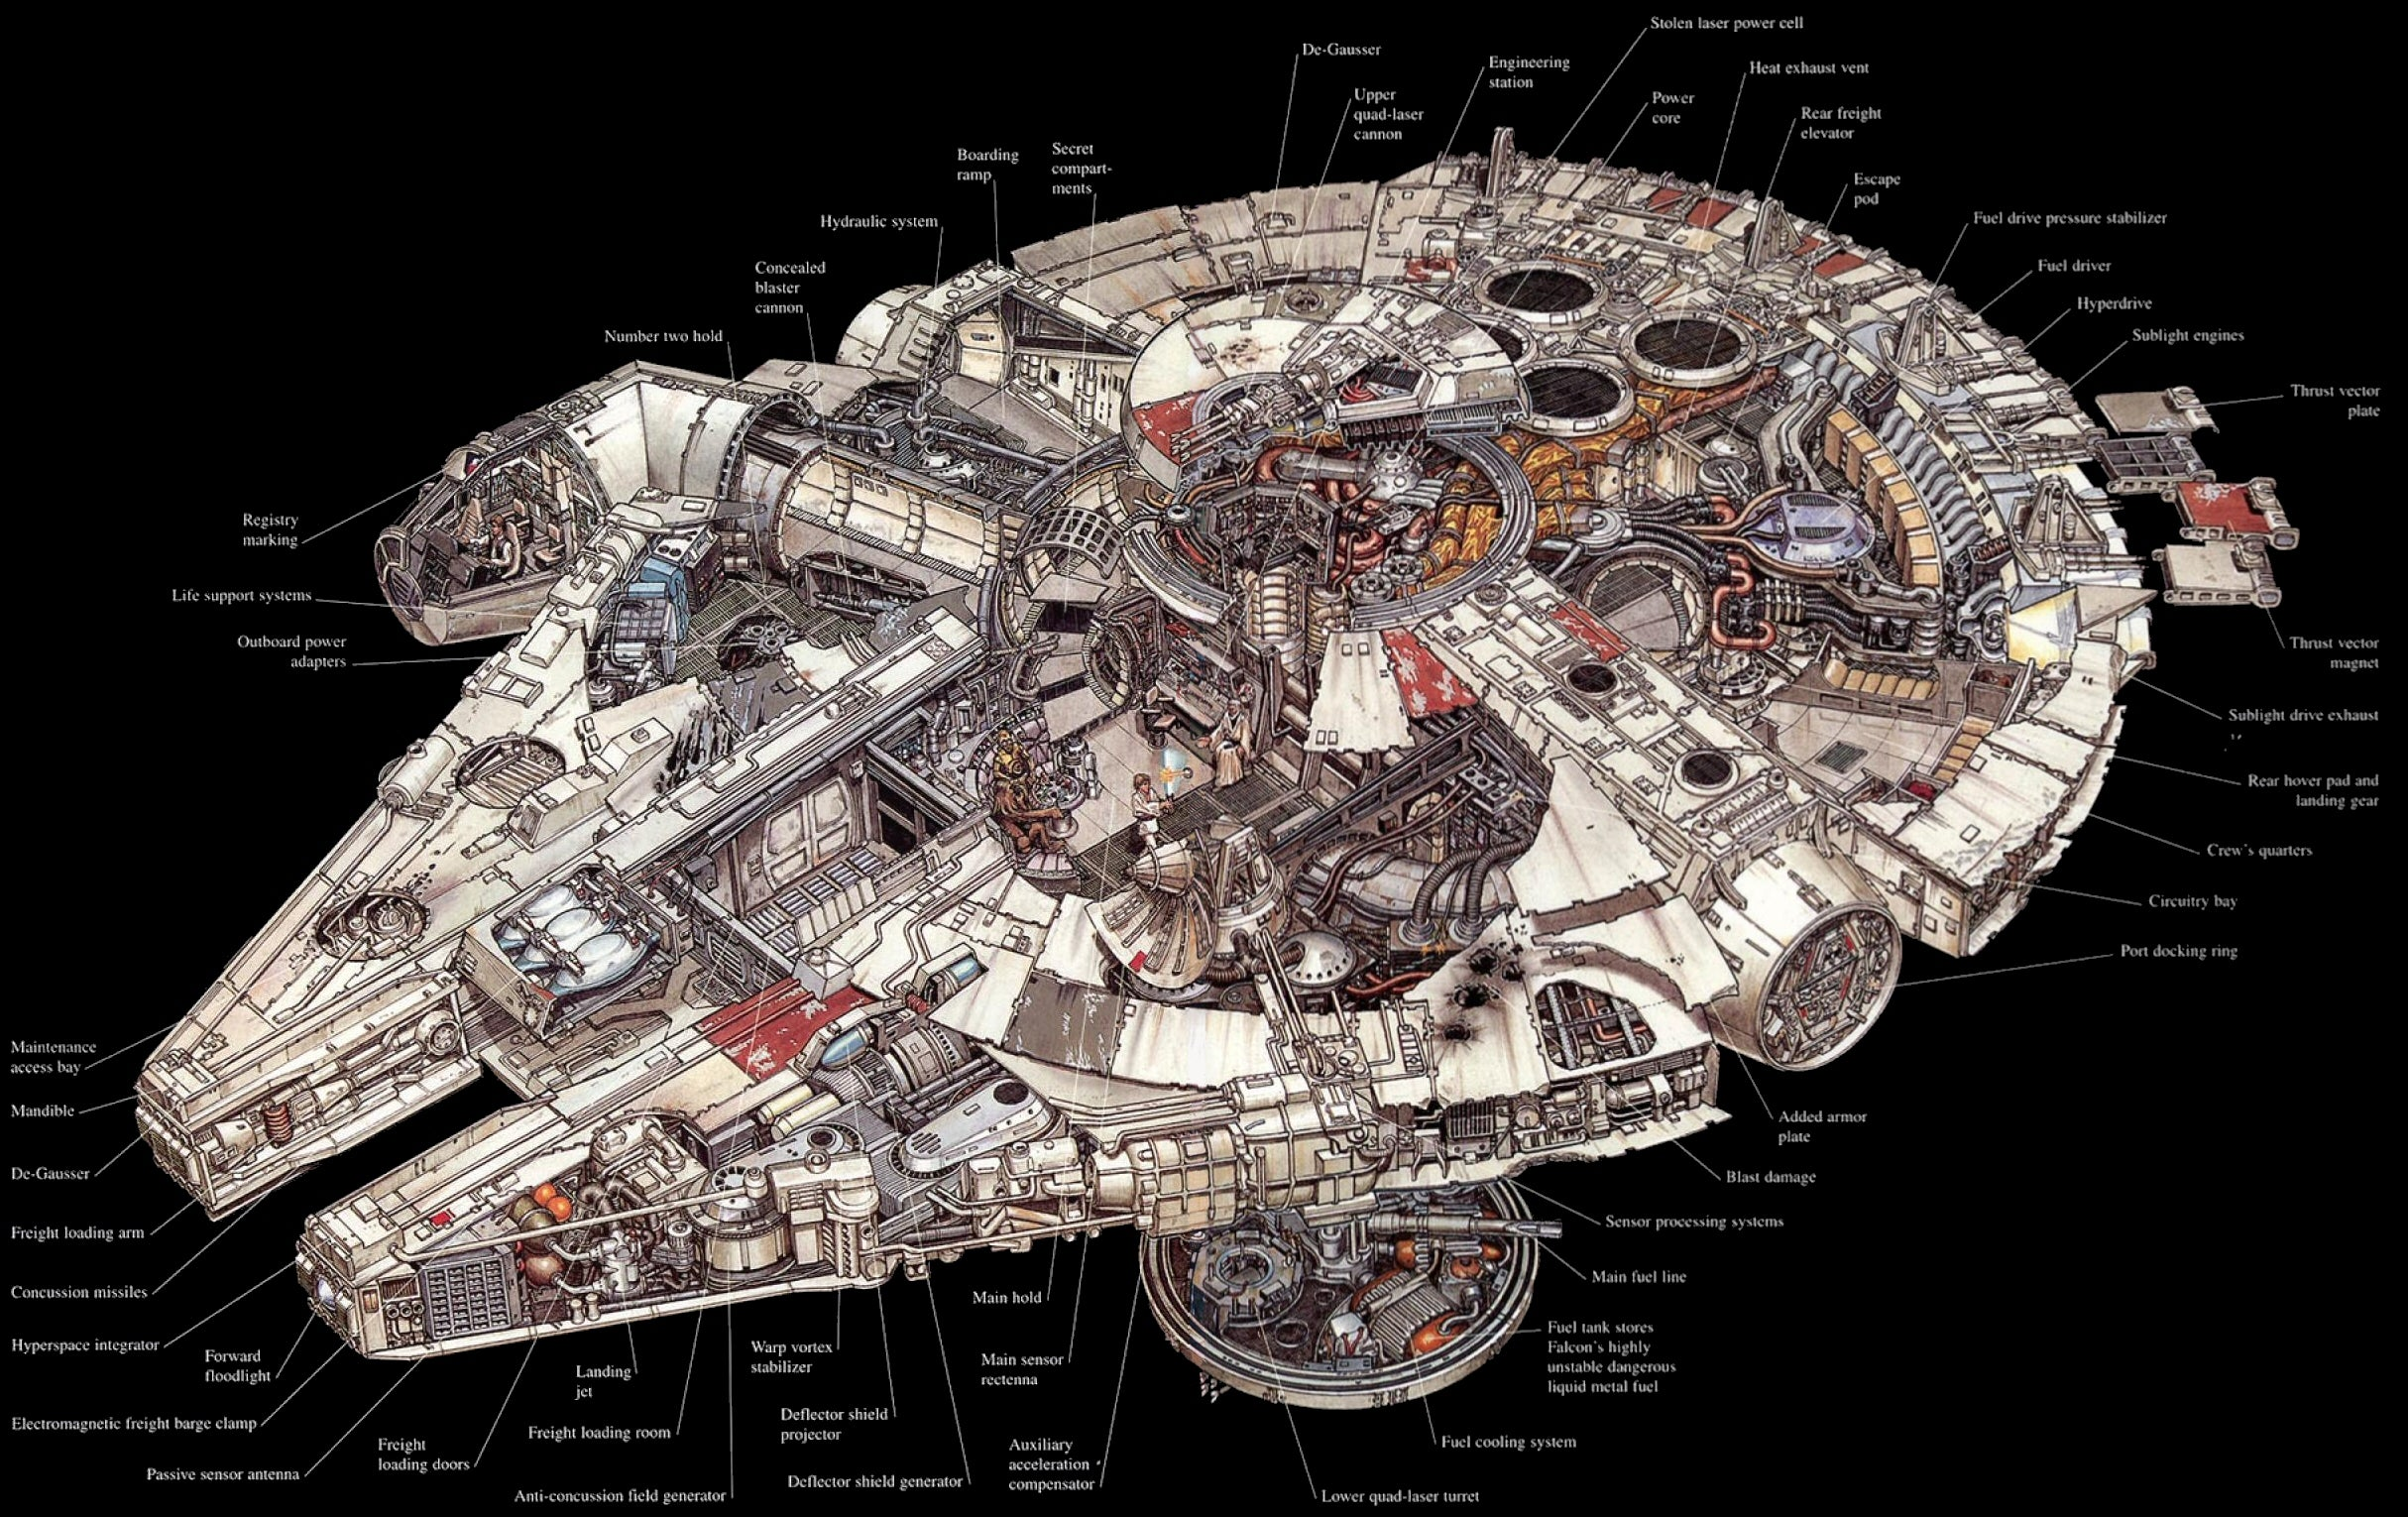 ldflbwc8dinoddegtuvl the amazing star wars vehicles and location cutaways by hans jenssen